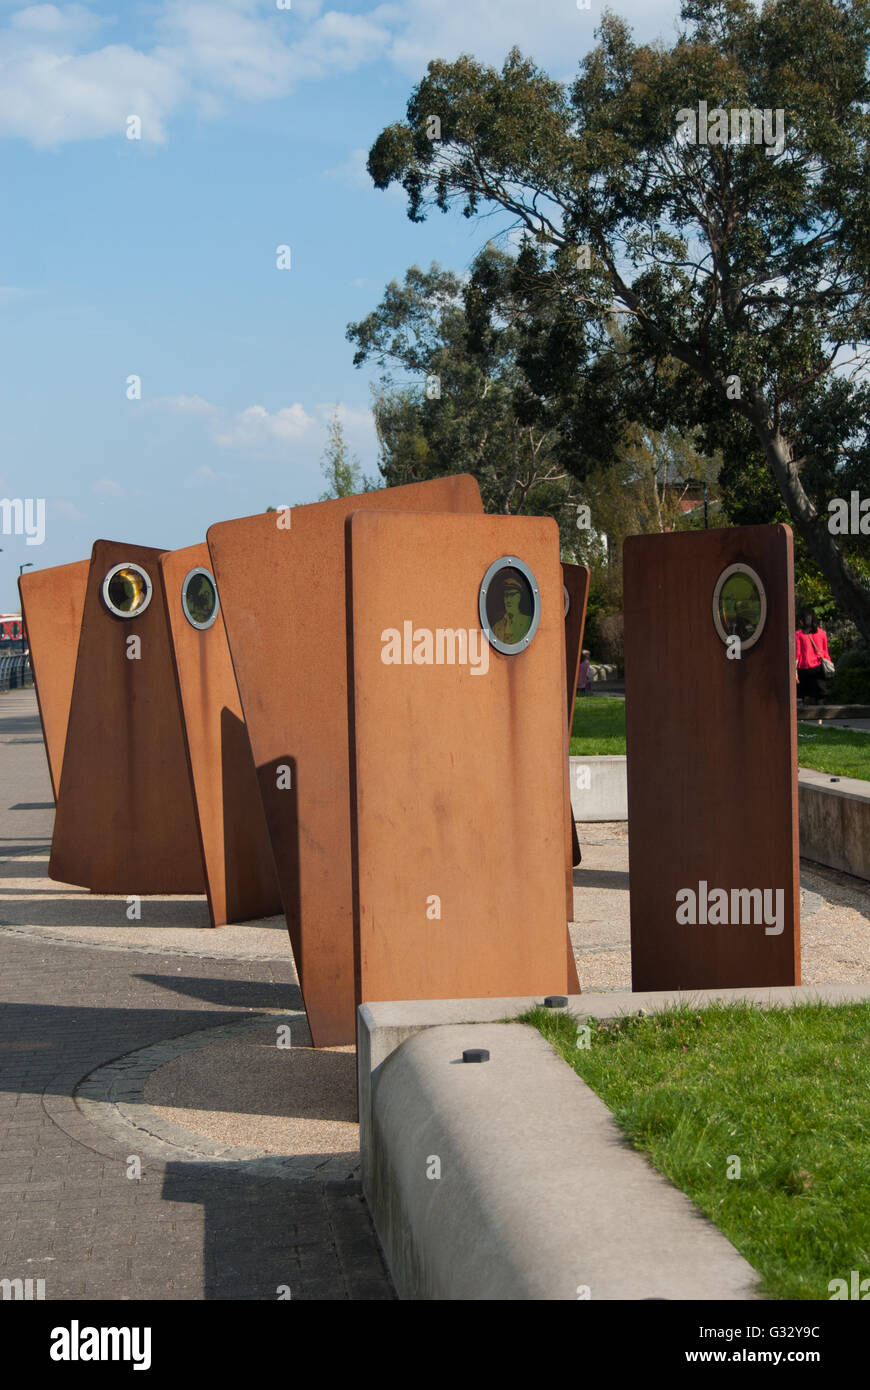 Public art - Casuals on the Irwell Sculpture Trail -Salford Quays - Stock Image